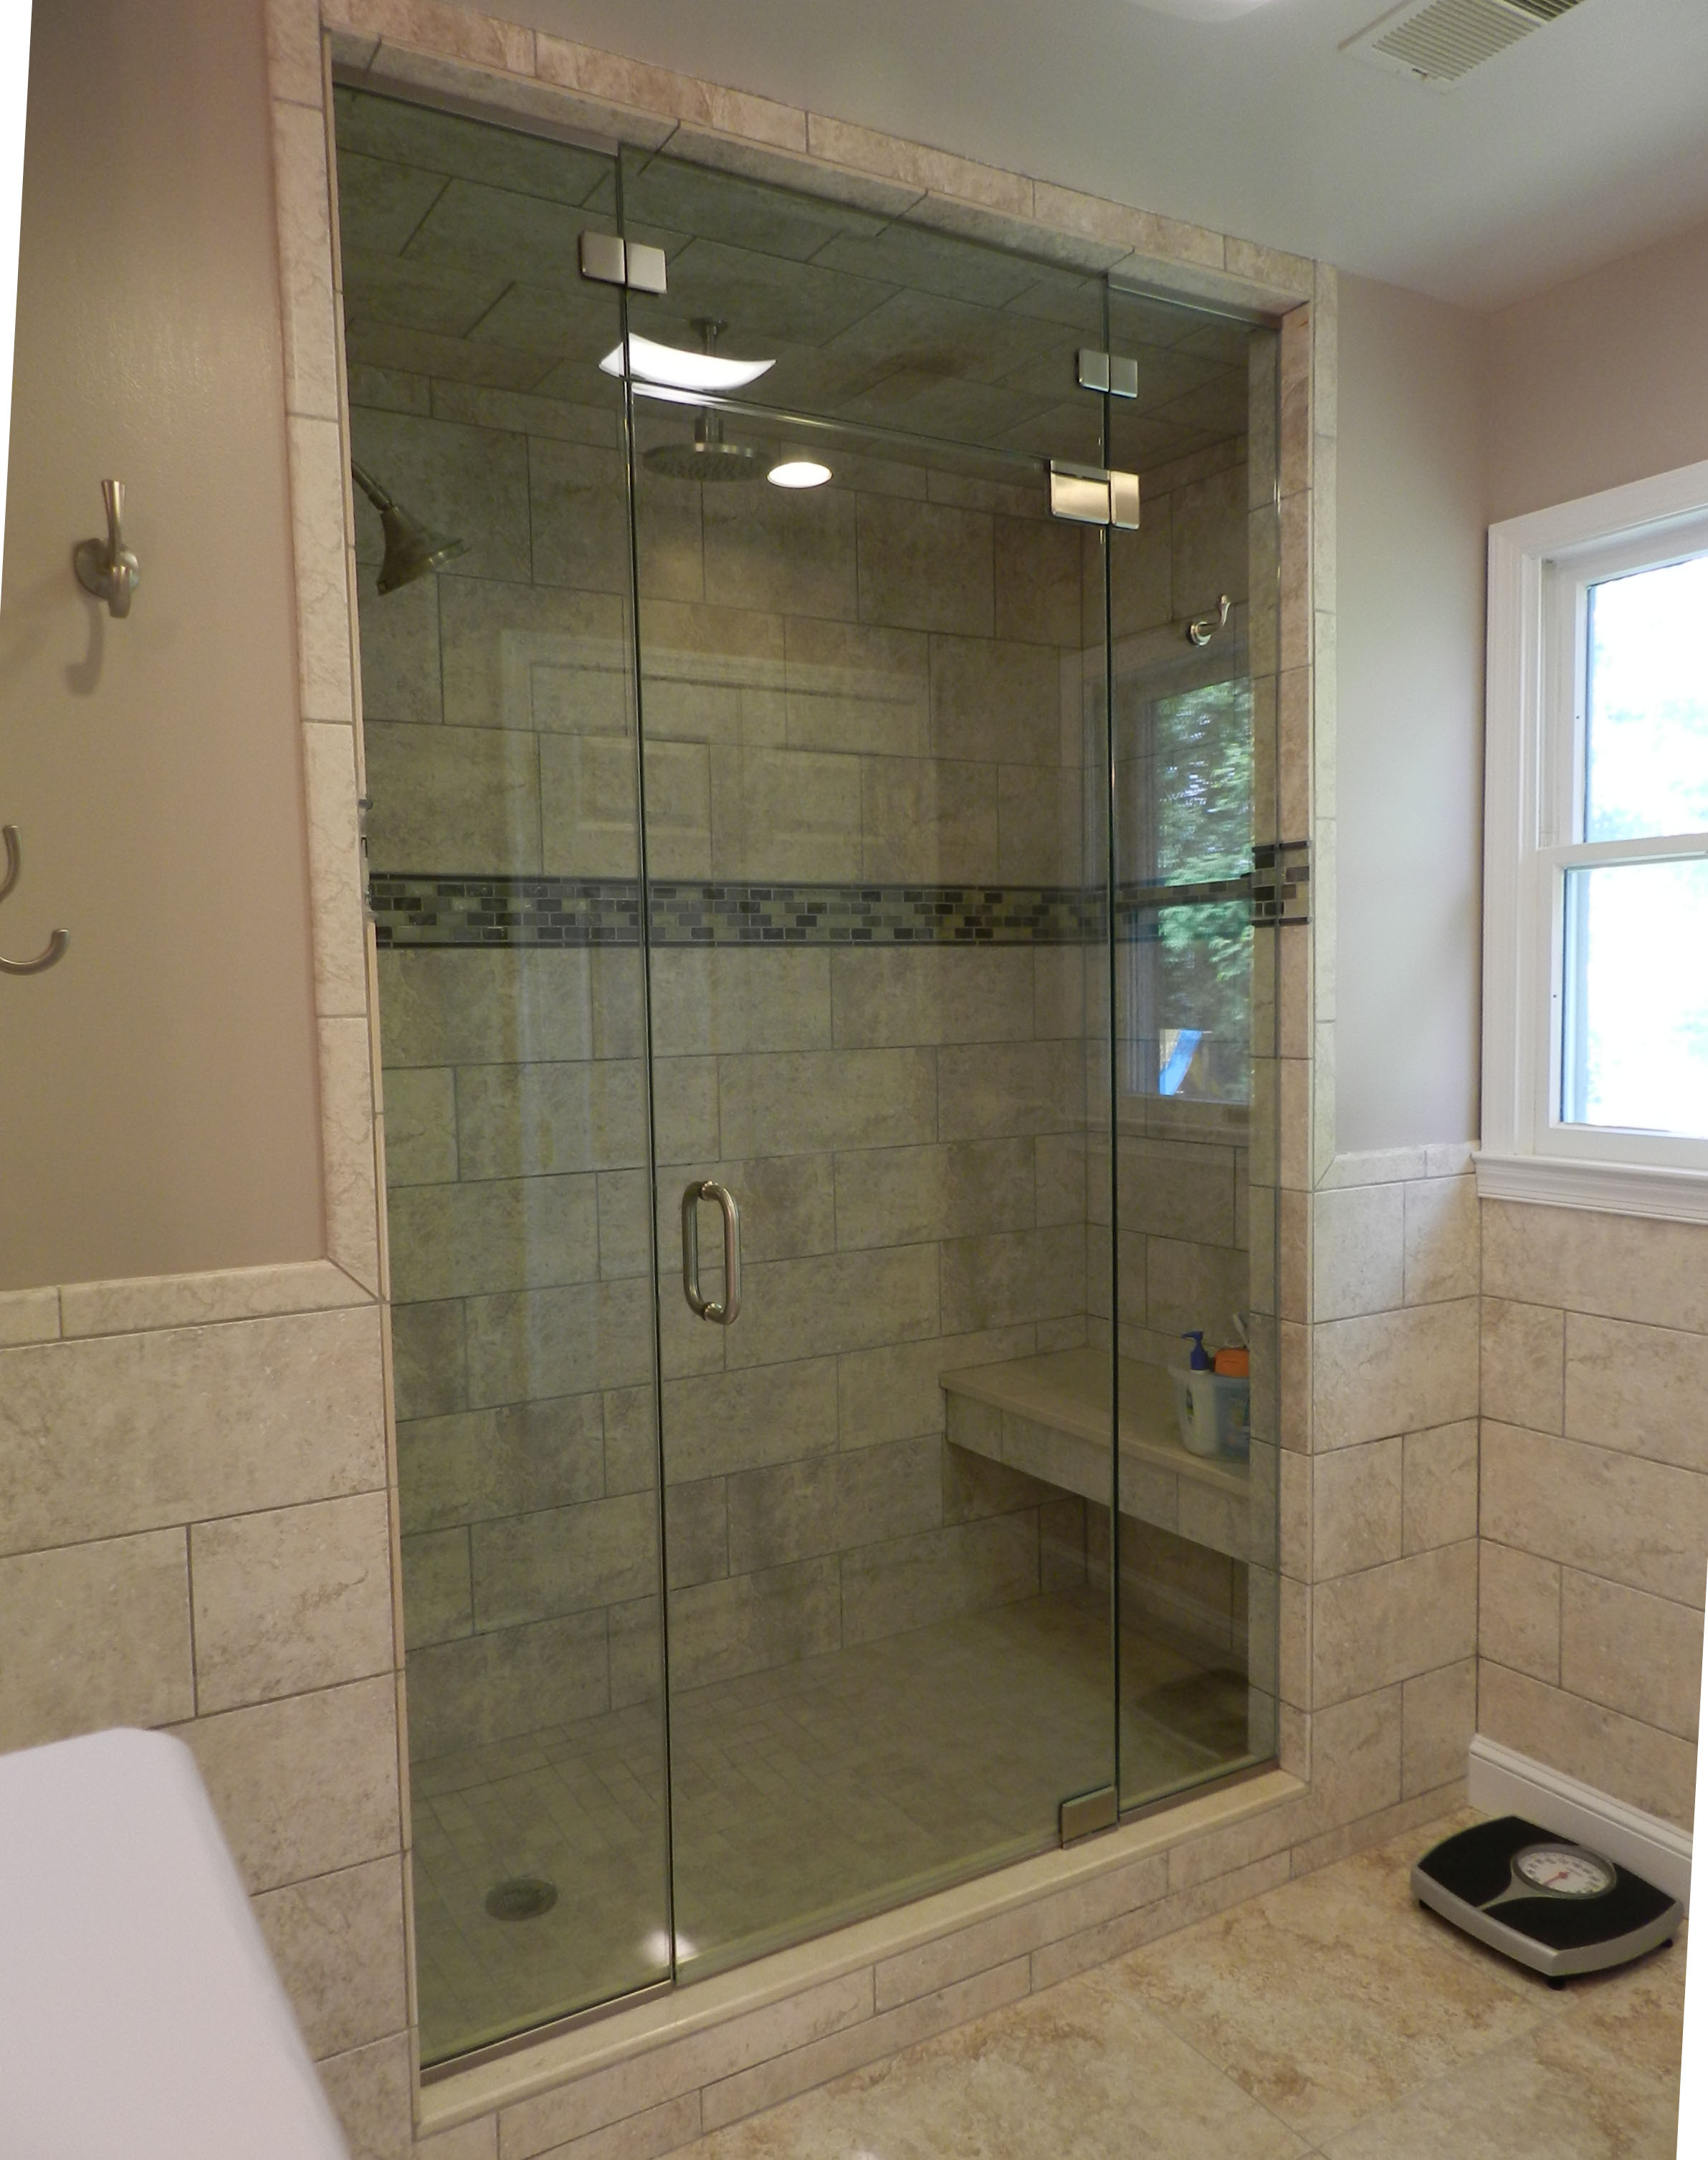 me medium search glass wall breathtaking google half for nz of shower size door near doors bathtub